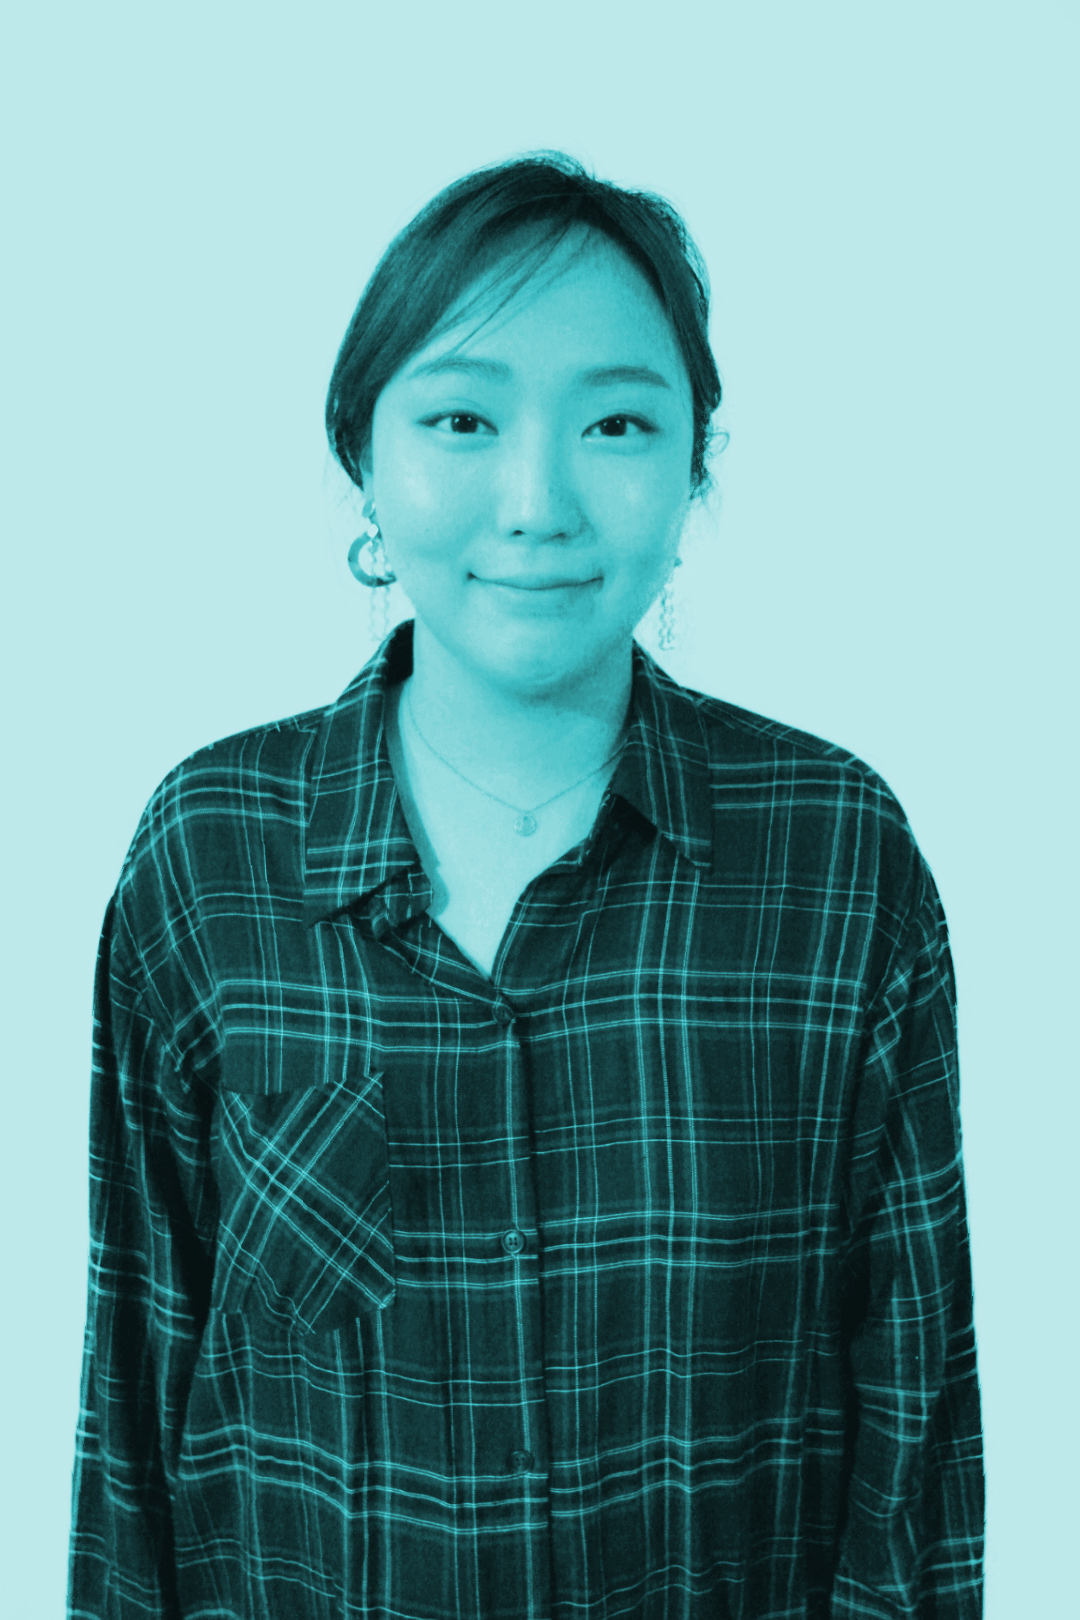 Sasha - Having taught extensively back in her home Korea, Sasha has experience tutoring both children and adults. She continues to pursue her passion in teaching as she loves the rewarding feeling of getting to see her students progress in learning a new language.